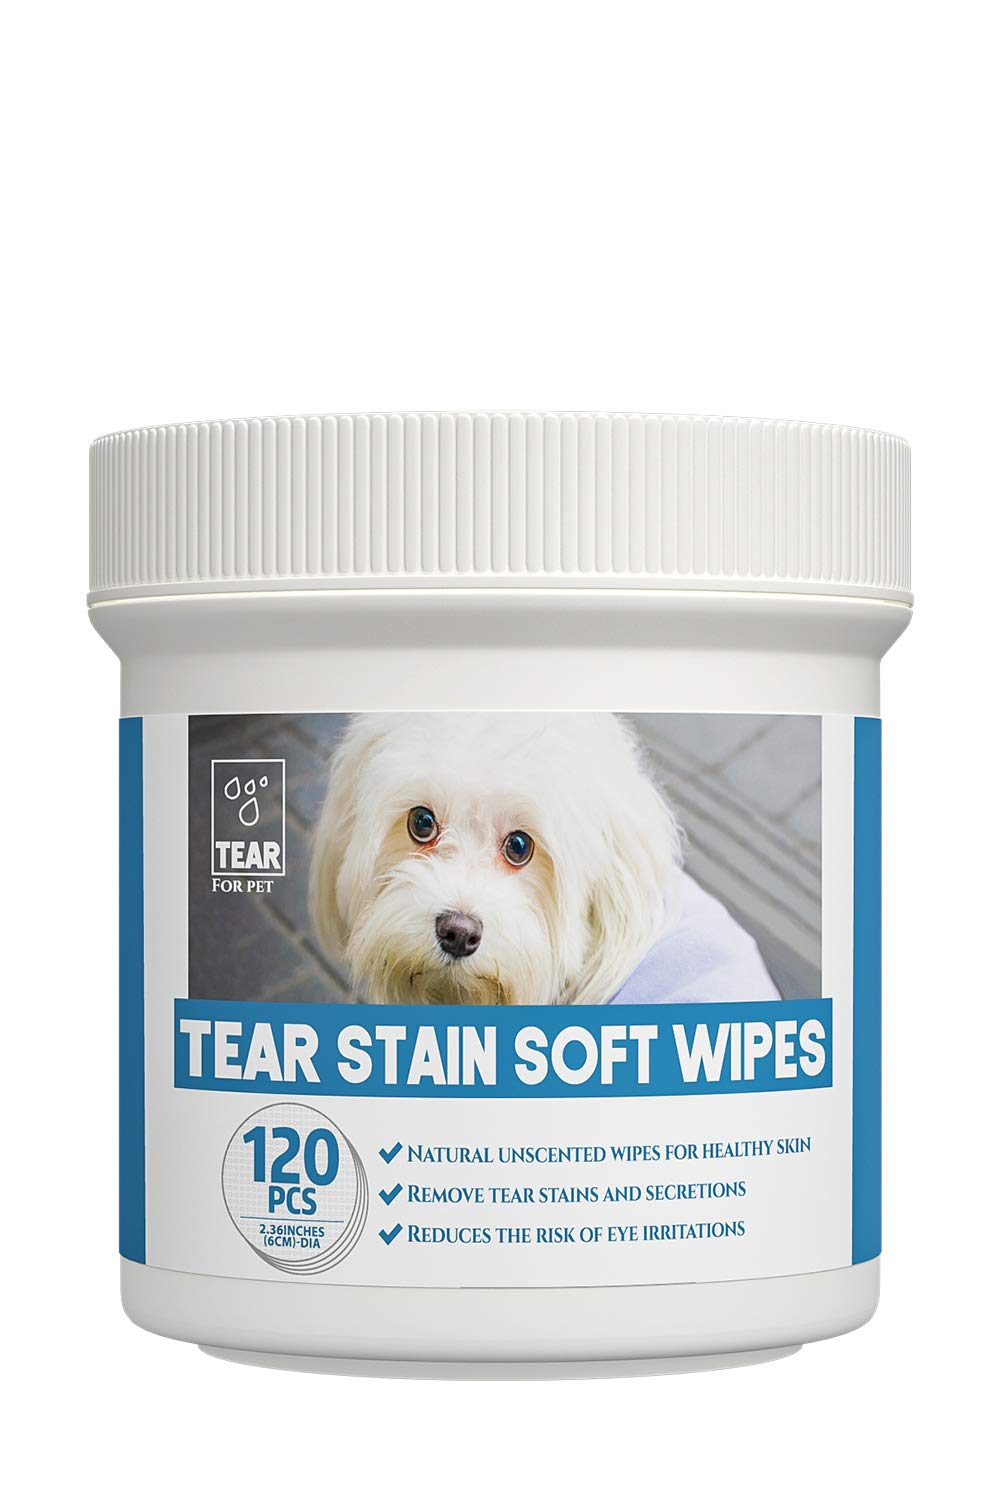 PUPMATE Tear Stain Remover Wipes for Dogs & Cats, Extra Moist and Natural Wrinkle Wipes for Pets, Eye Crust Treatment for White Fur, 120 Presoaked Cotton Pads, Unscented Eye Wipes